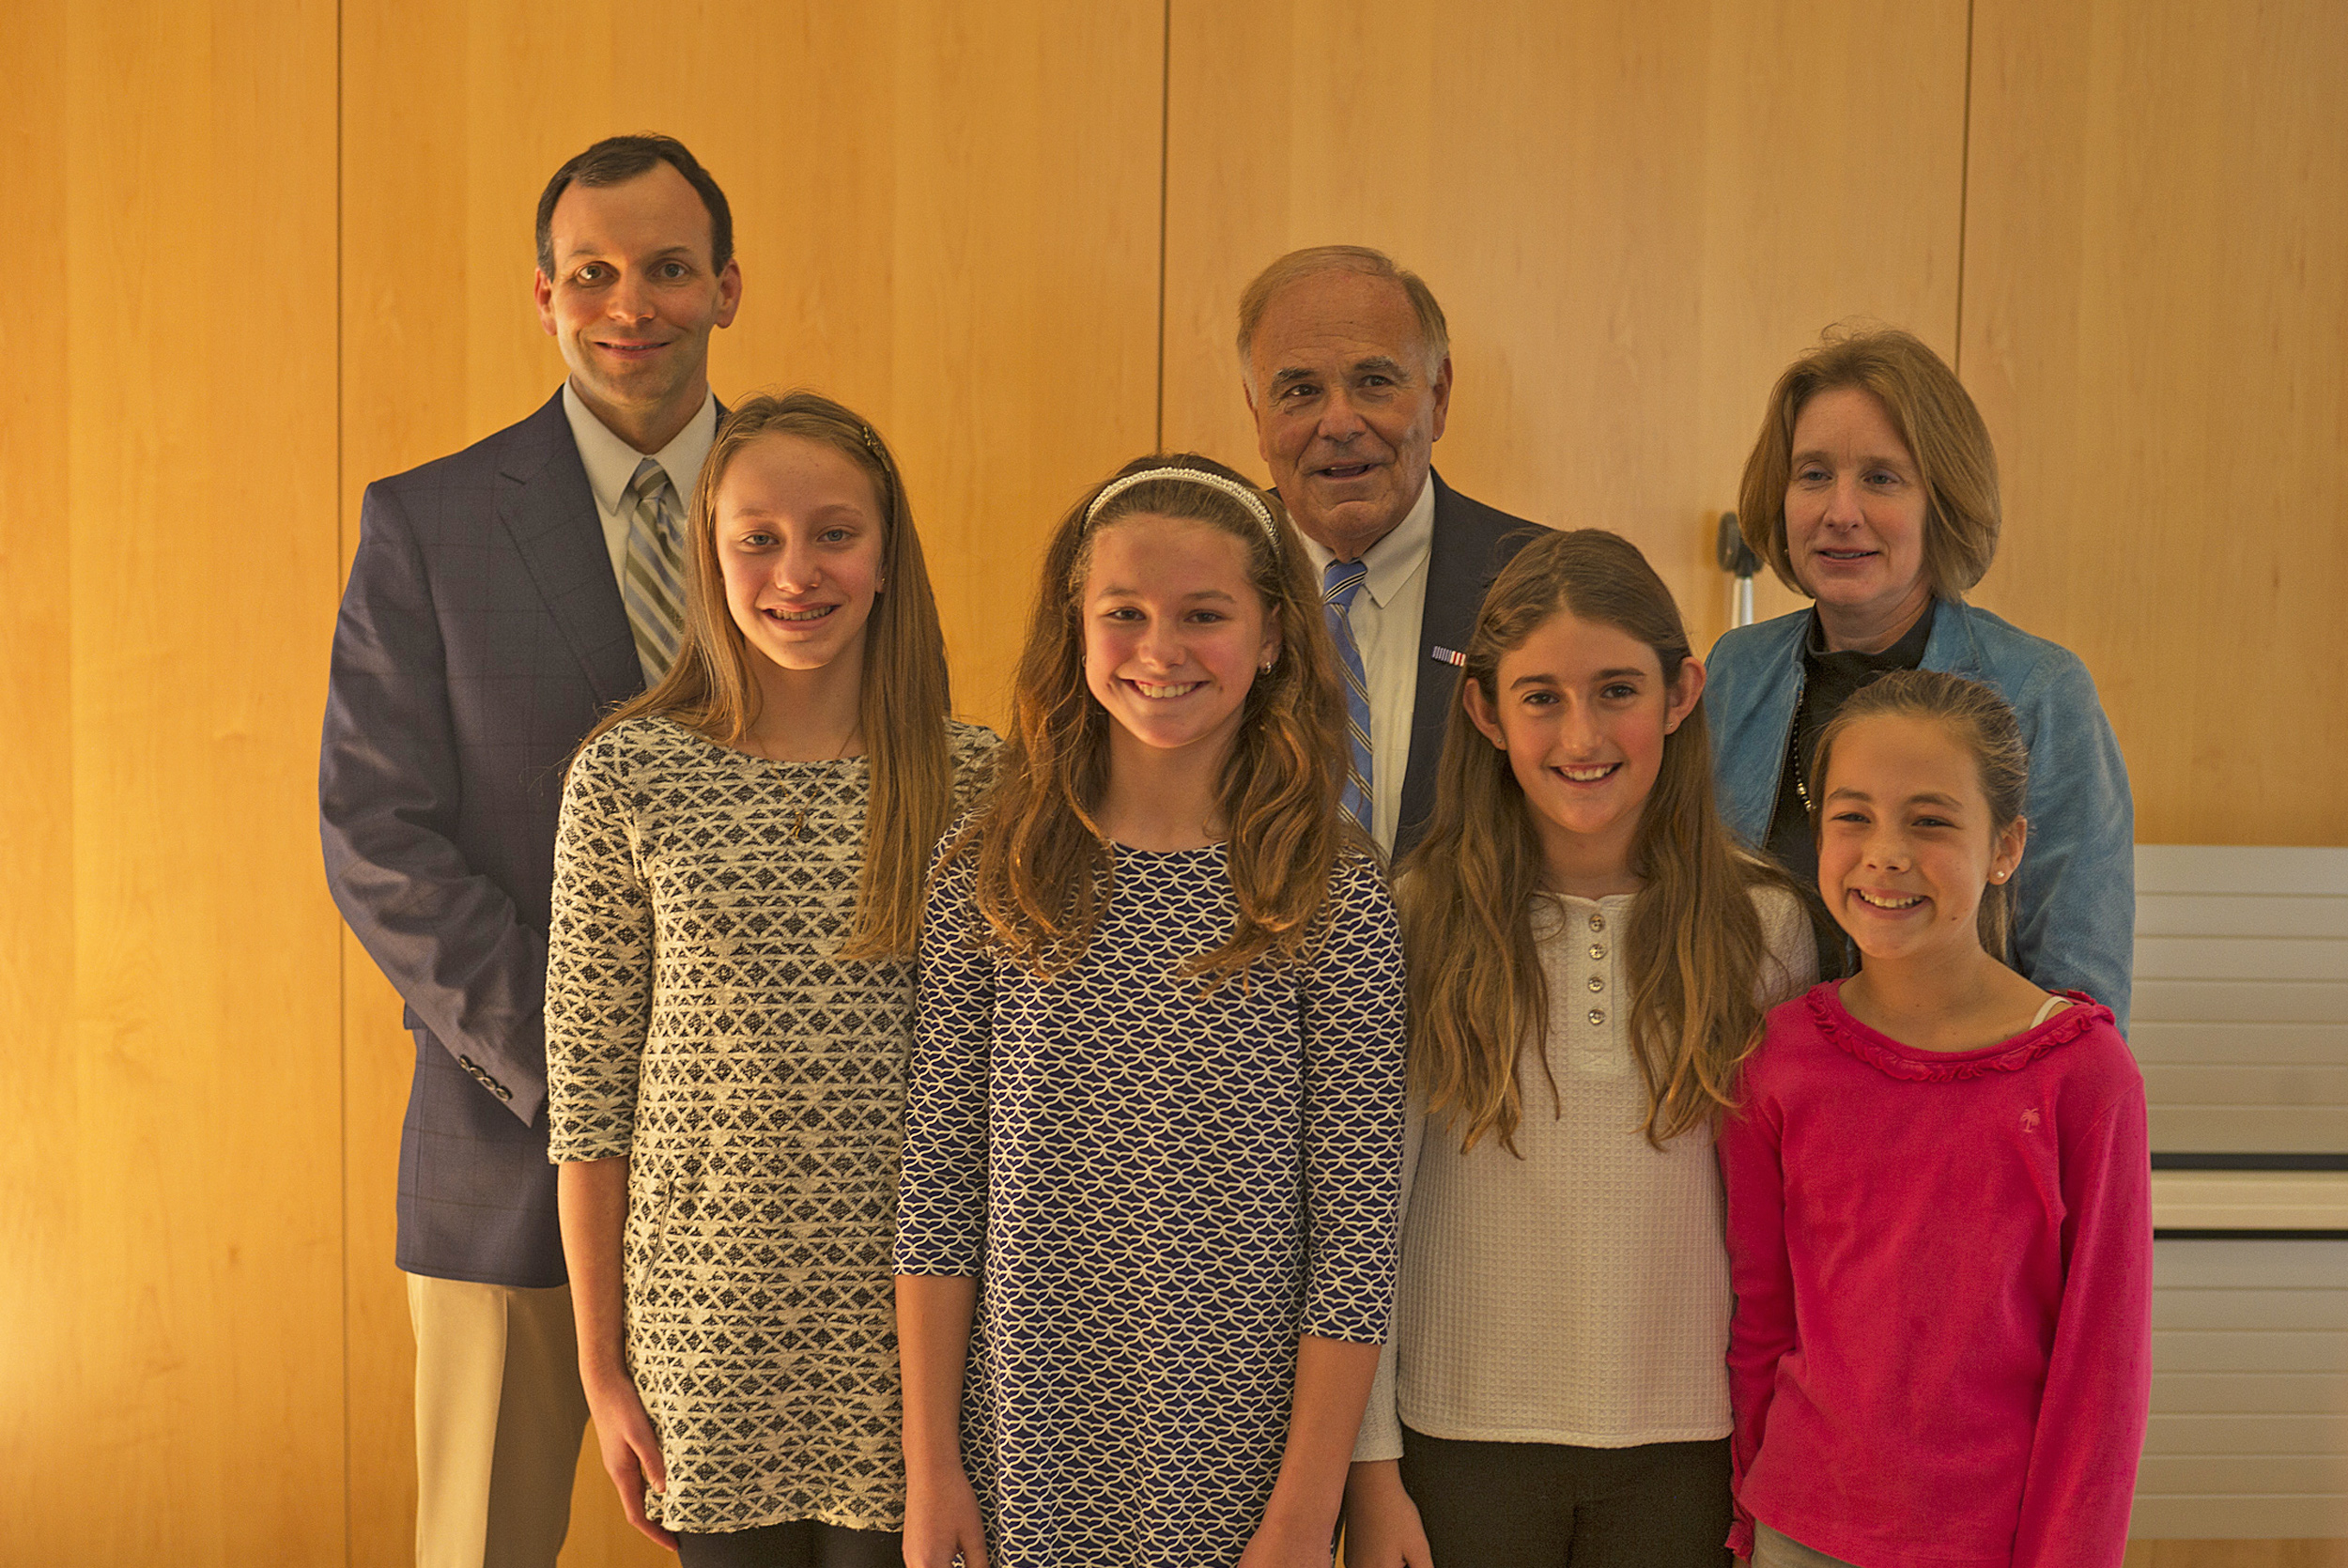 the annenberg public policy center of the university of radnor 5th graders front l to r sophia mlodzienski mallory toomey gabriela heberling and lydia schwarz back radnor s jim kearney former gov